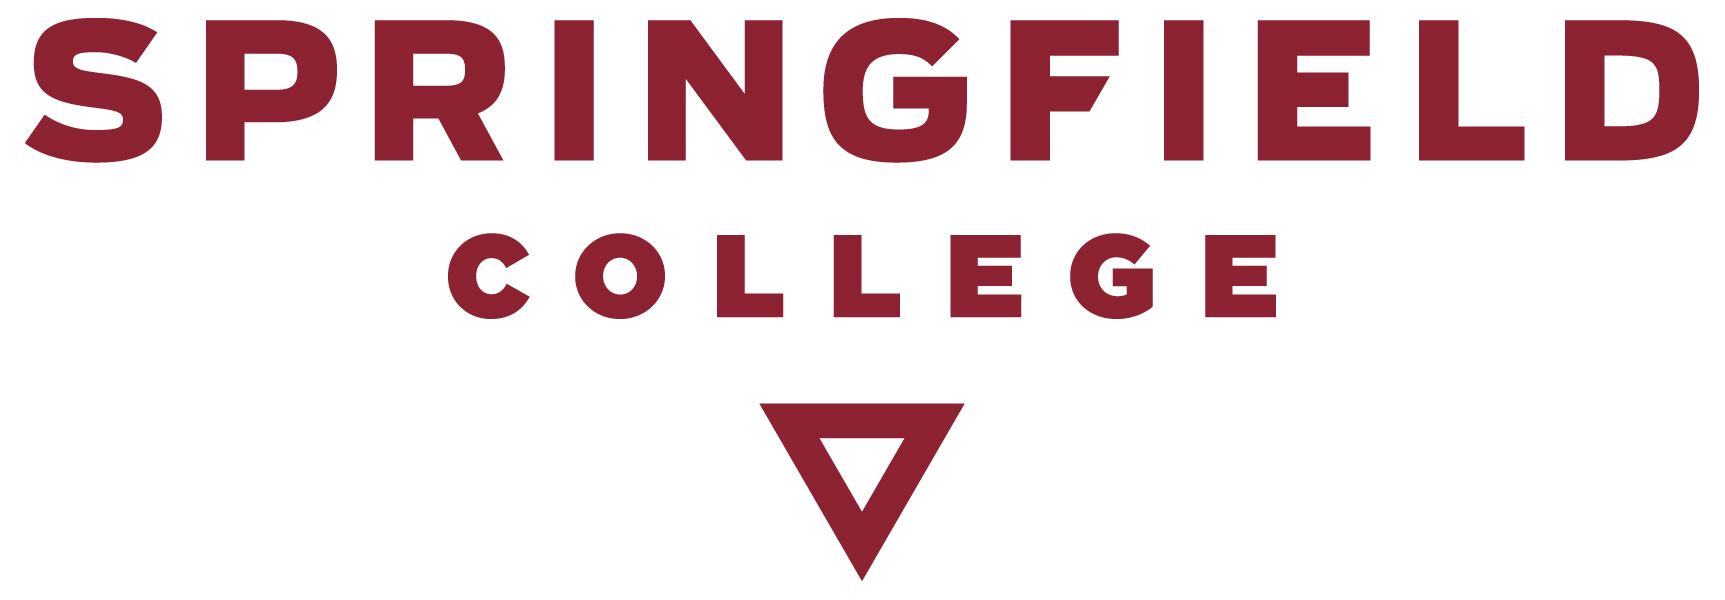 Springfield college master logo final